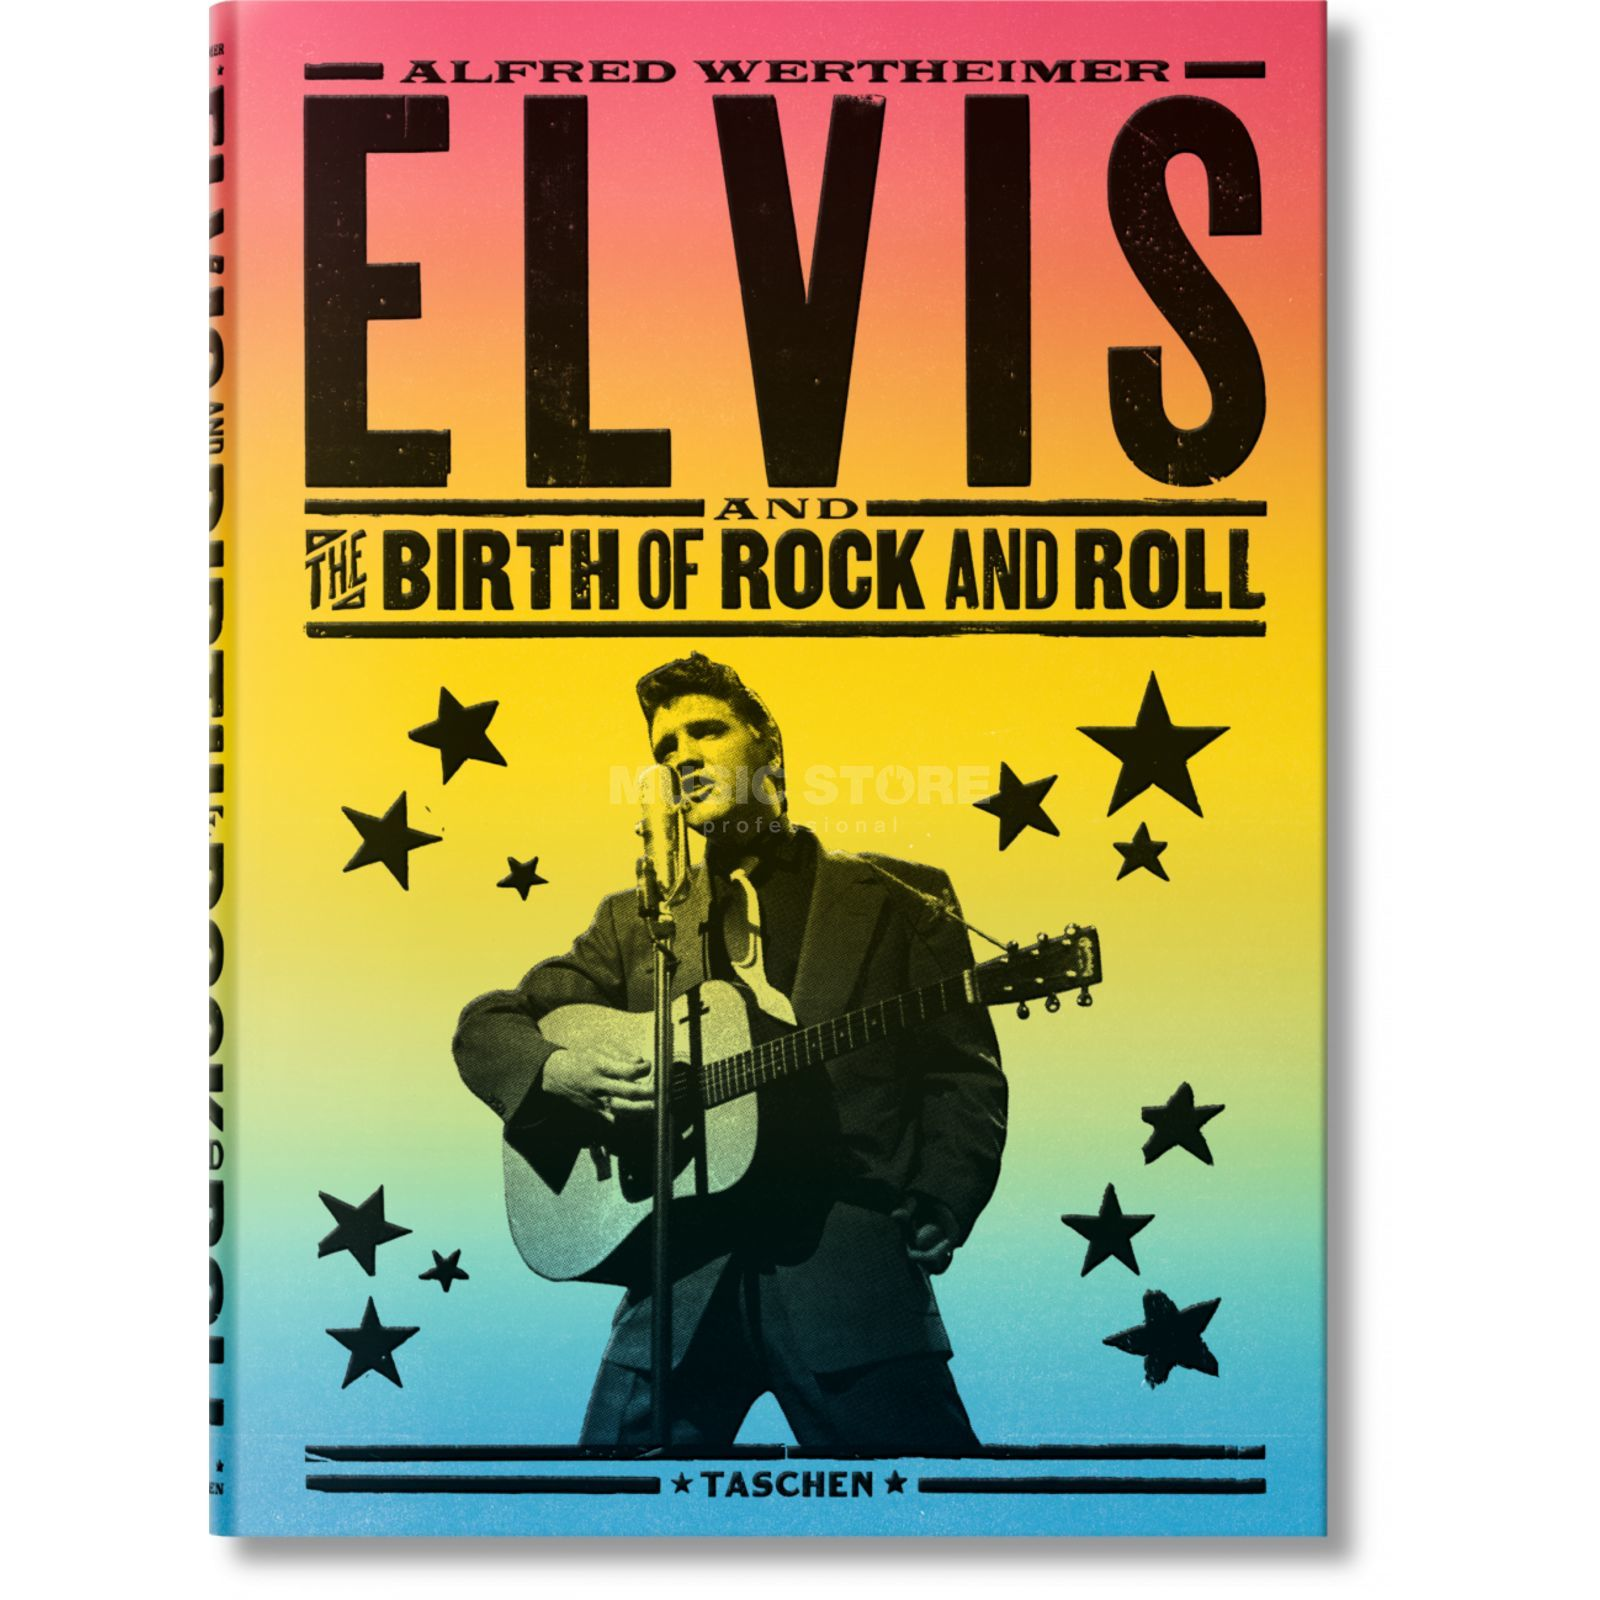 Taschen-Verlag Alfred Wertheimer - Elvis and the Birth of Rock and Roll Produktbild